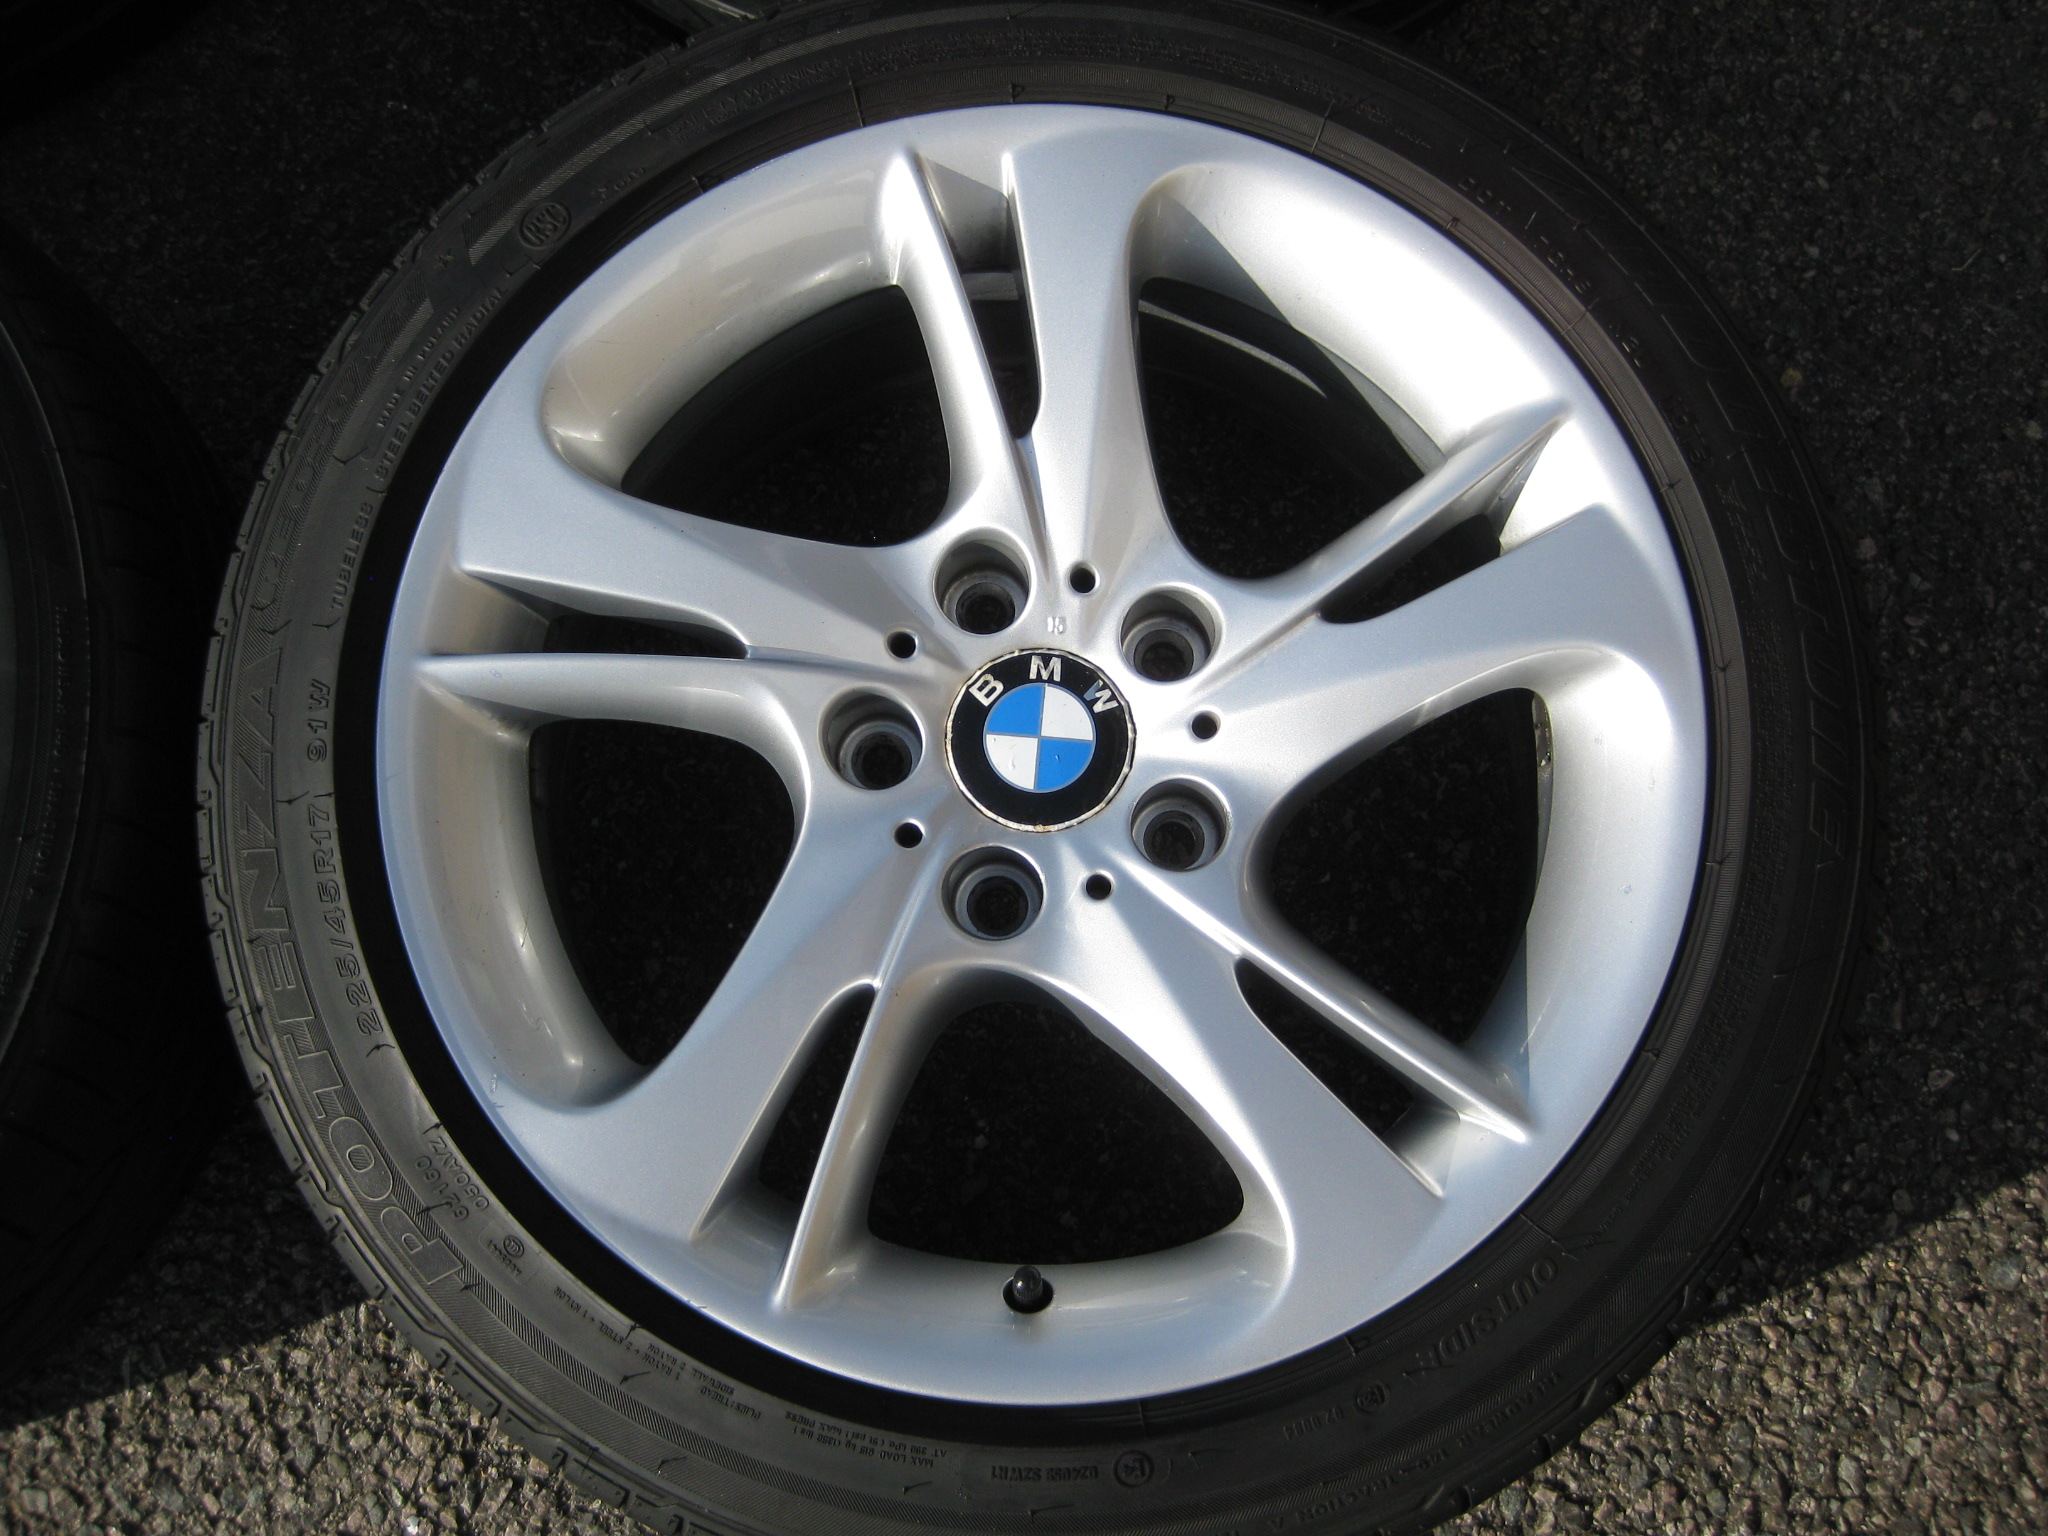 "USED 17"" GENUINE BMW STYLE 292 E89 Z4 TURBINE SPOKE ALLOY WHEELS, WIDER REAR, VGC INC GOOD BRIDGESTONE RUNFLAT TYRES"